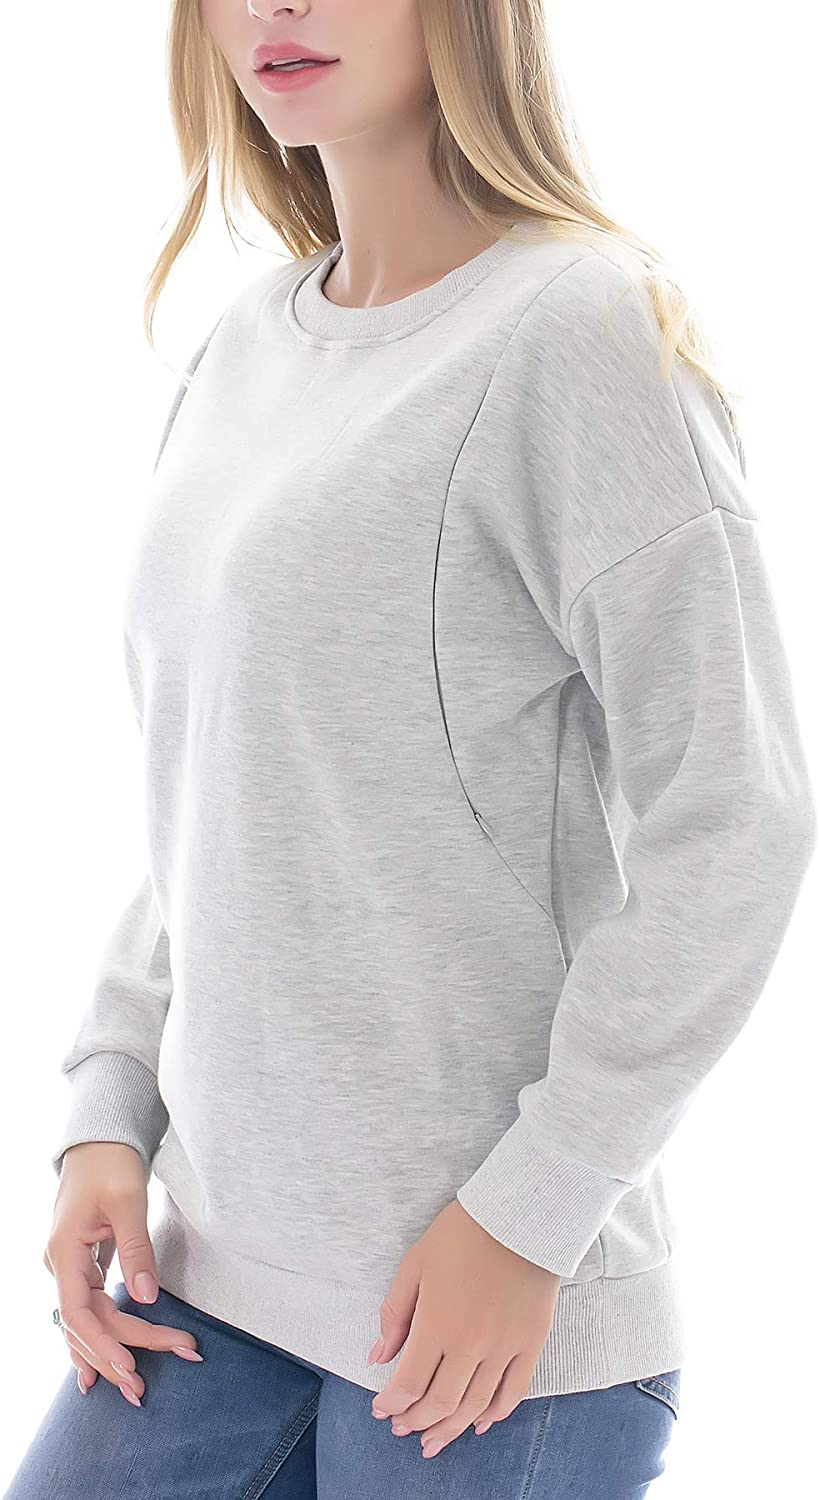 Smallshow Fleece Maternity Nursing Sweatshirt Long Sleeve Breastfeeding Tops